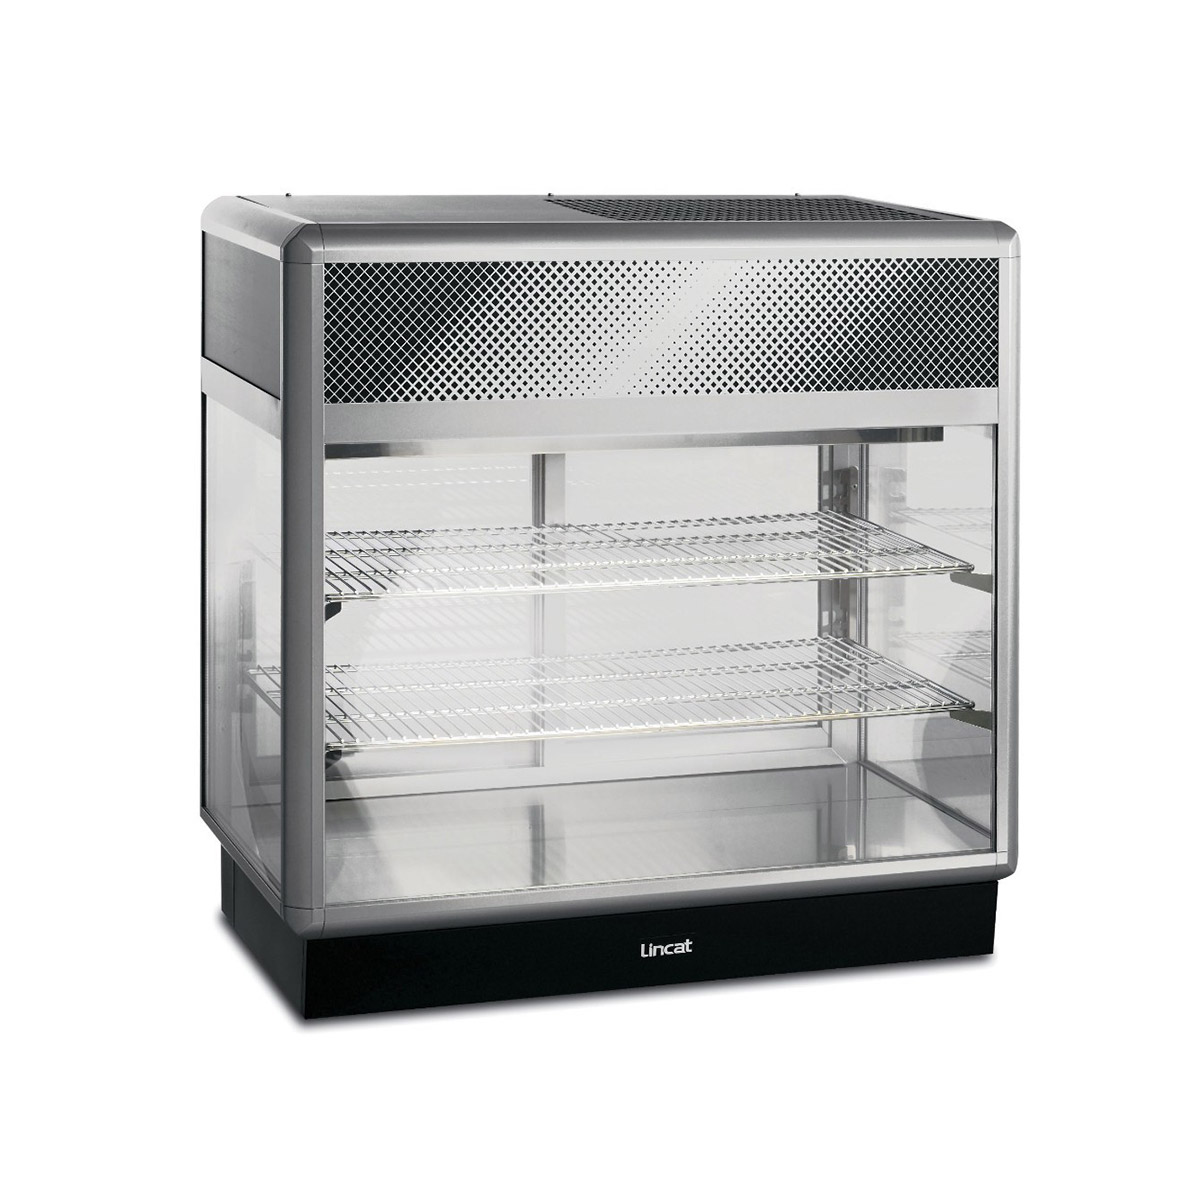 D6R/100B - Lincat Seal 650 Series Counter-top Rectangular Front Refrigerated Merchandiser - Back-Service - W 1000 mm - 0.7 kW